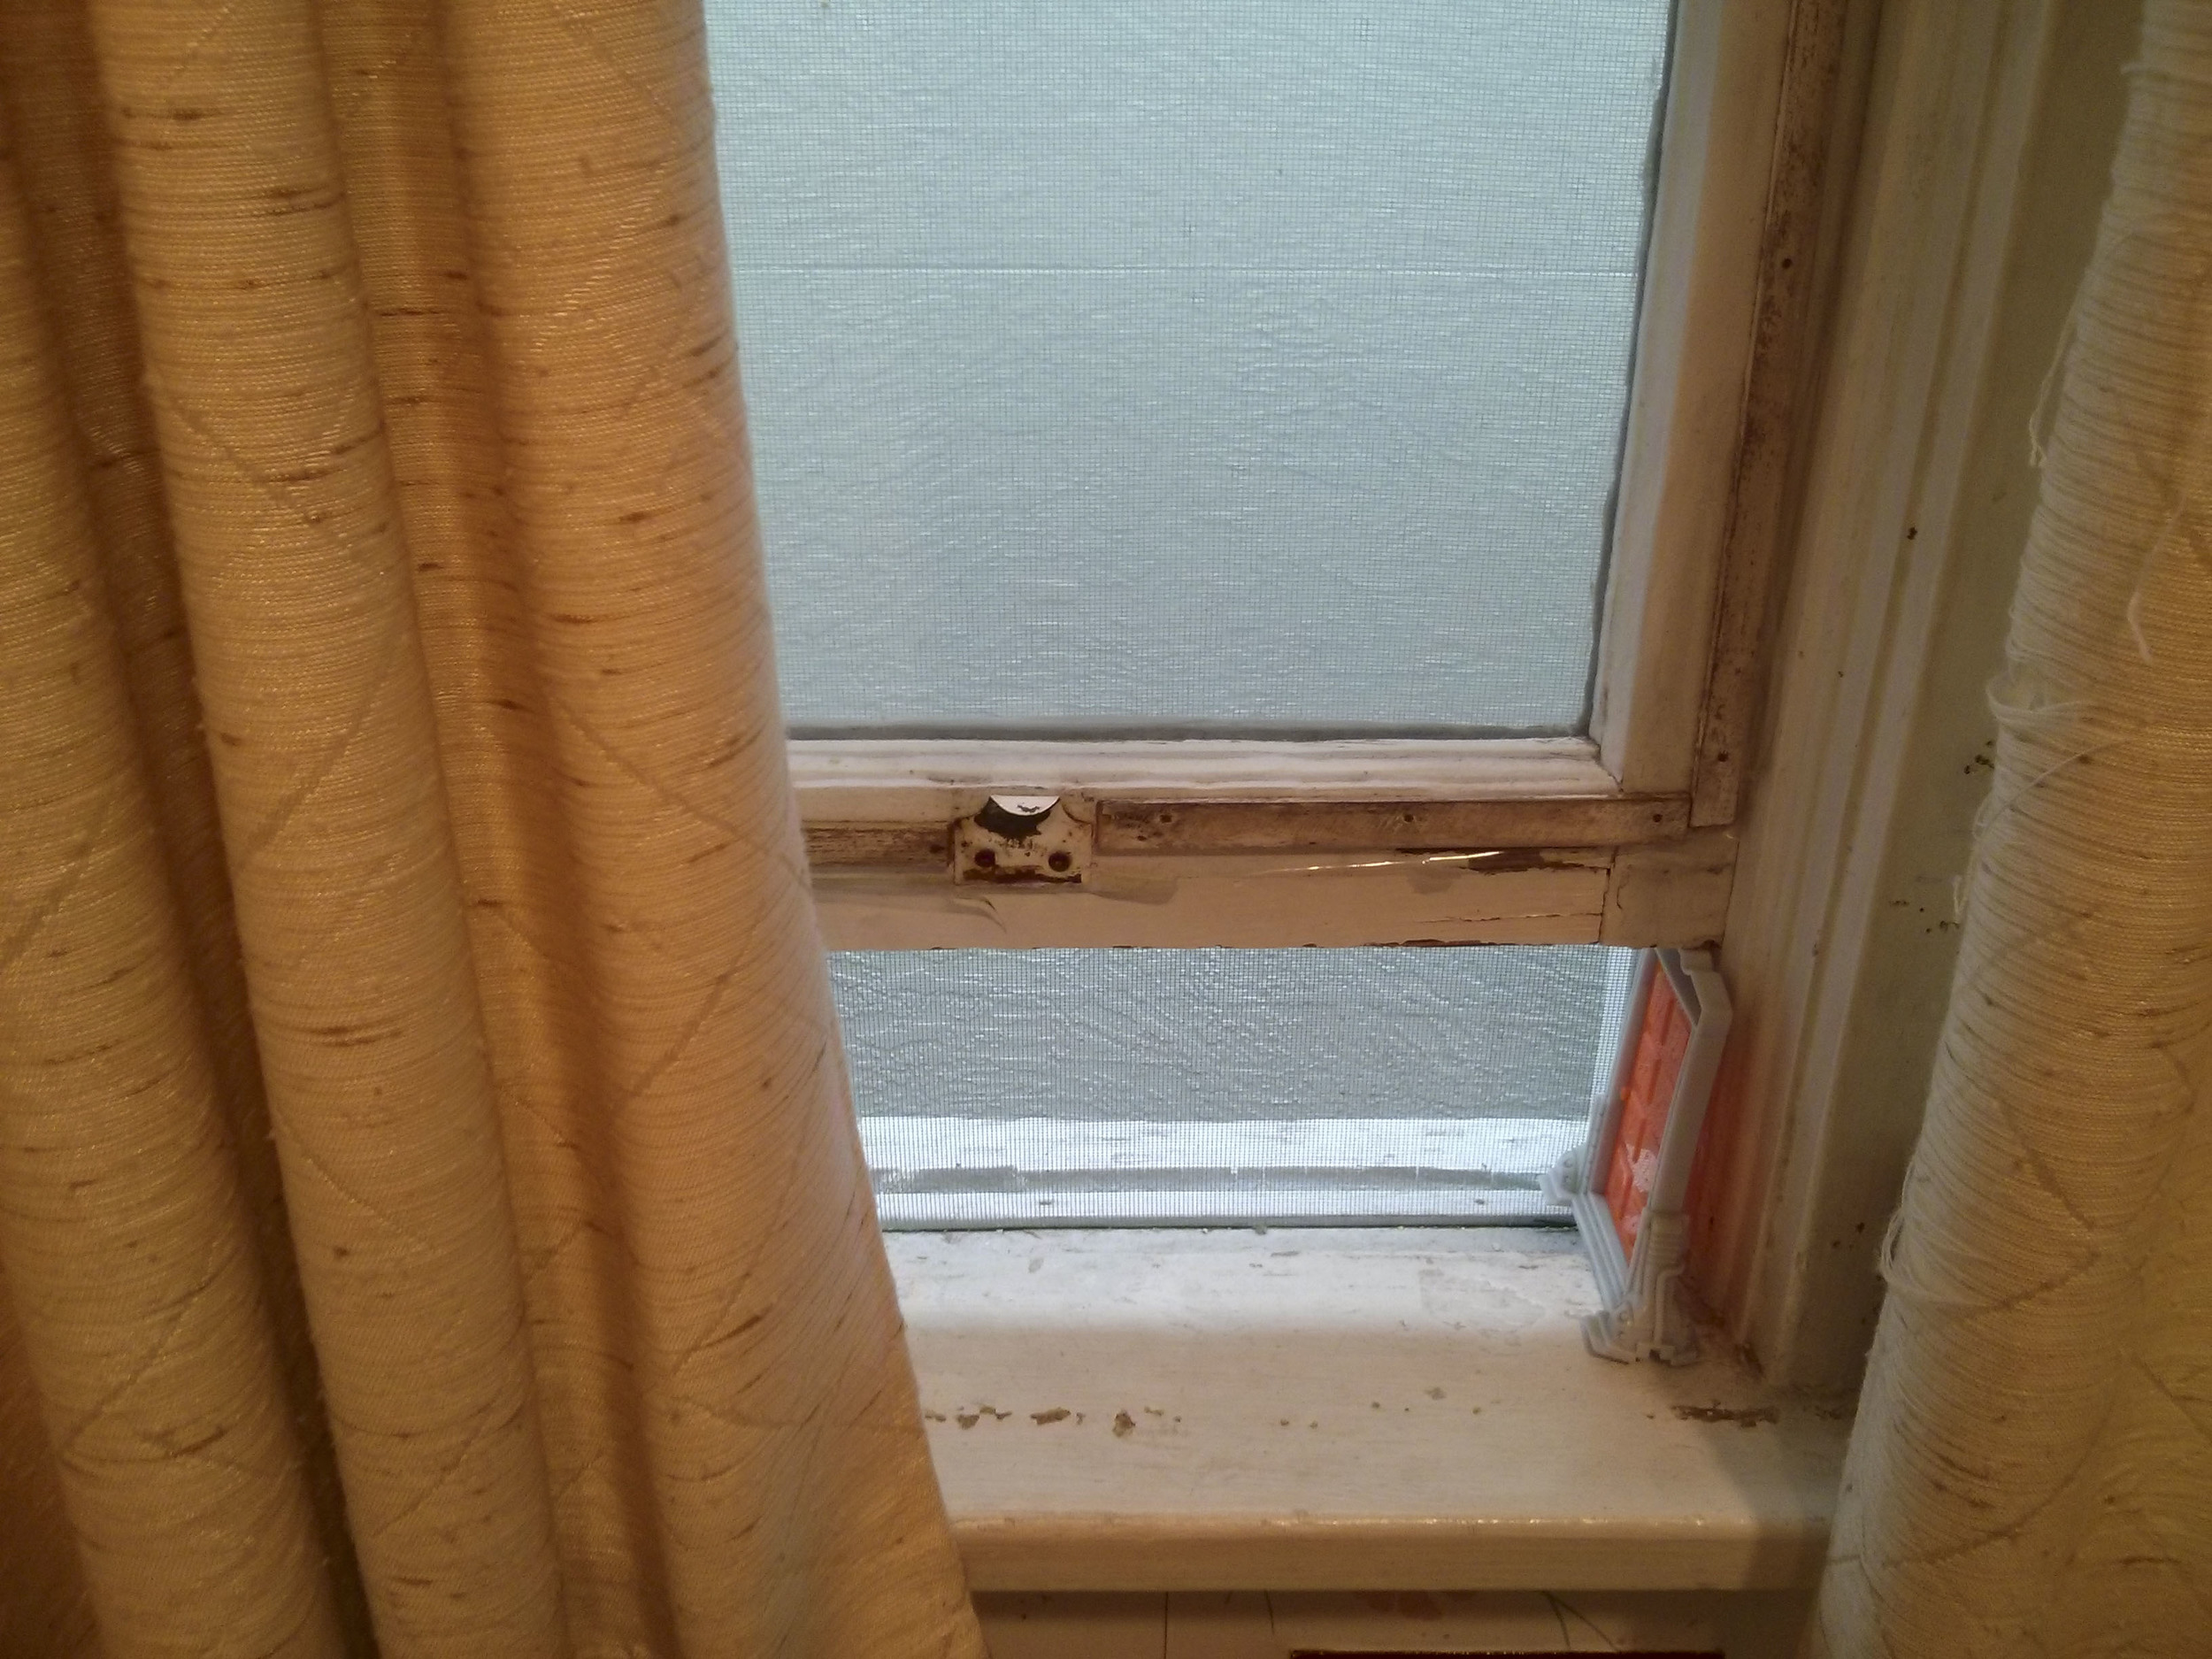 A McDonald's happy meal toy from Monster's Inc holds up the bathroom window